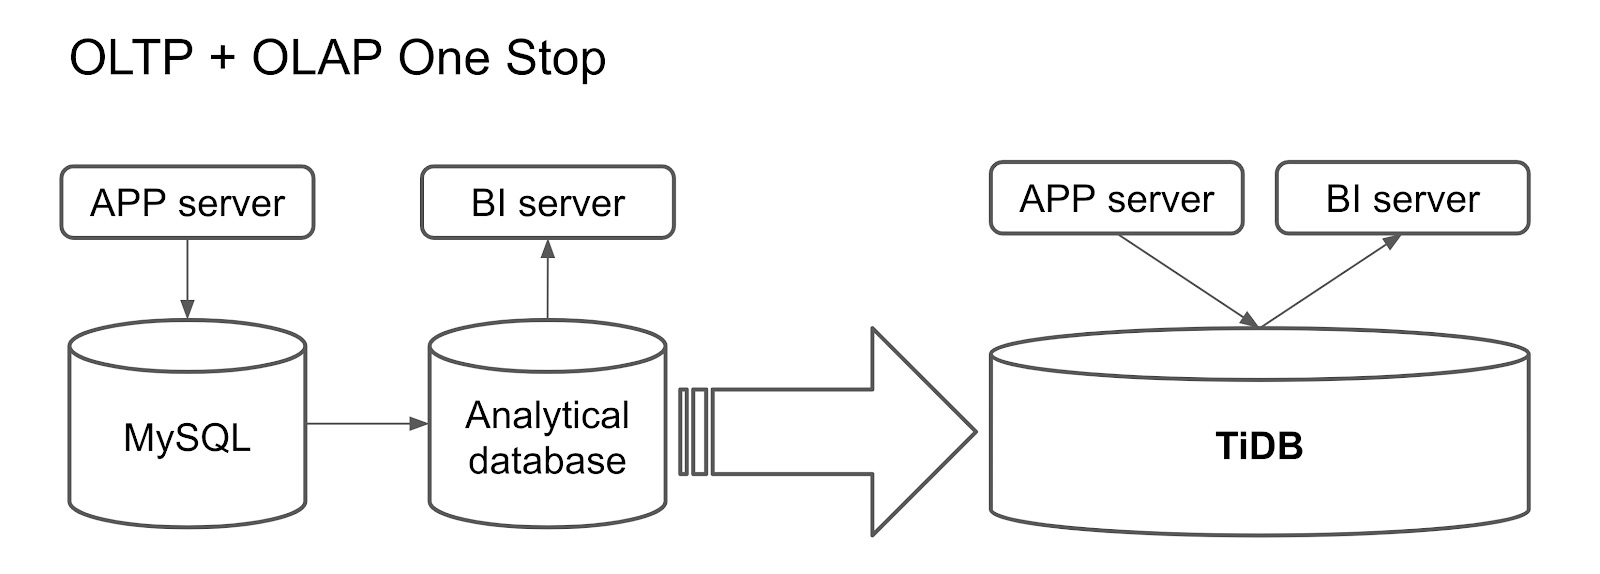 TiDB as a one-stop database for OLTP and OLAP